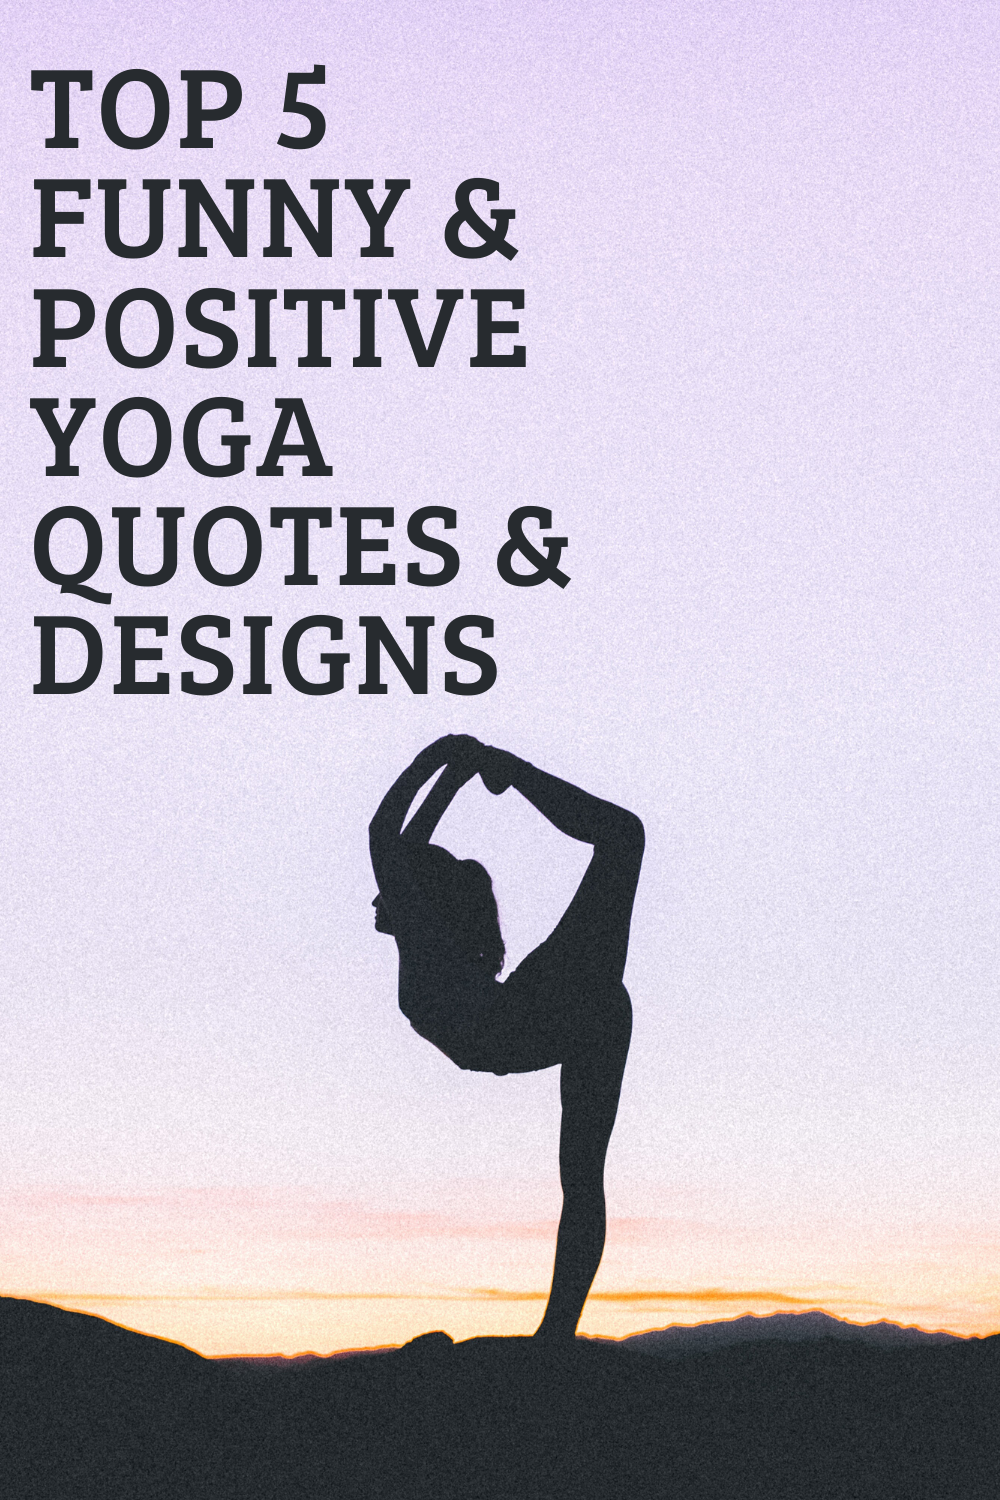 Top 5 Funny And Fun Yoga Designs And Quotes Yoga Quotes Funny Funny Yoga Shirt Yoga Funny